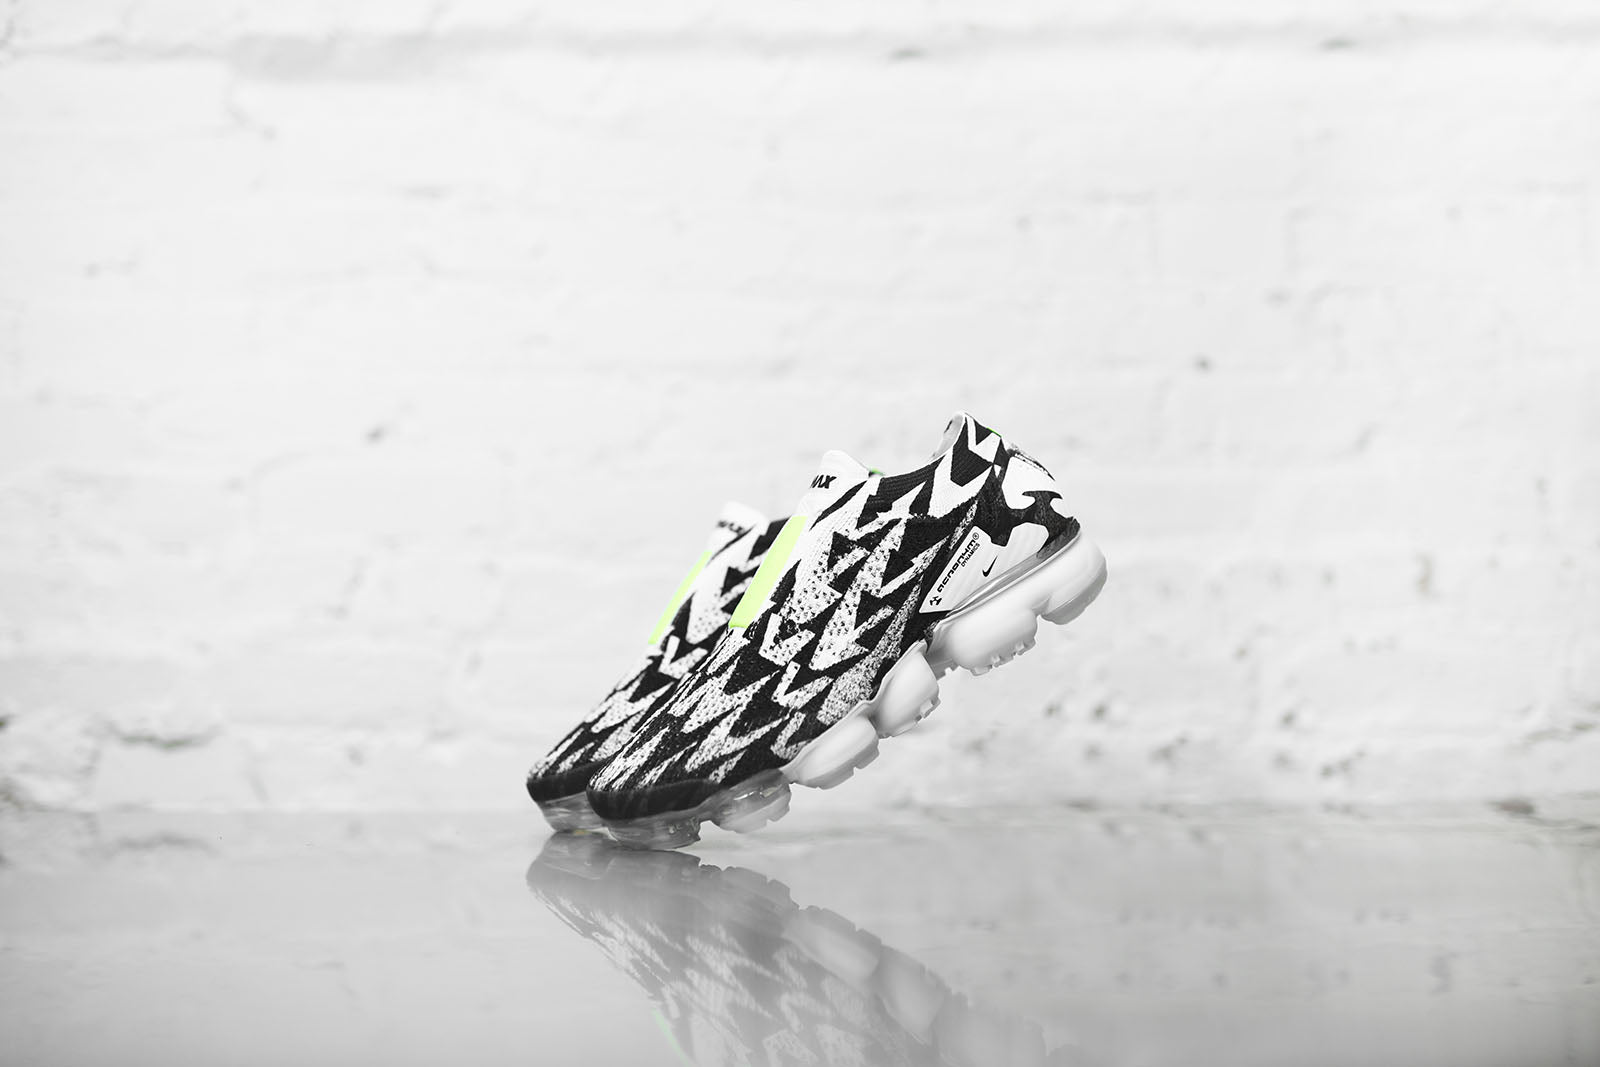 Nike x Acronym Air VaporMax Moc - White / Black / Volt Green